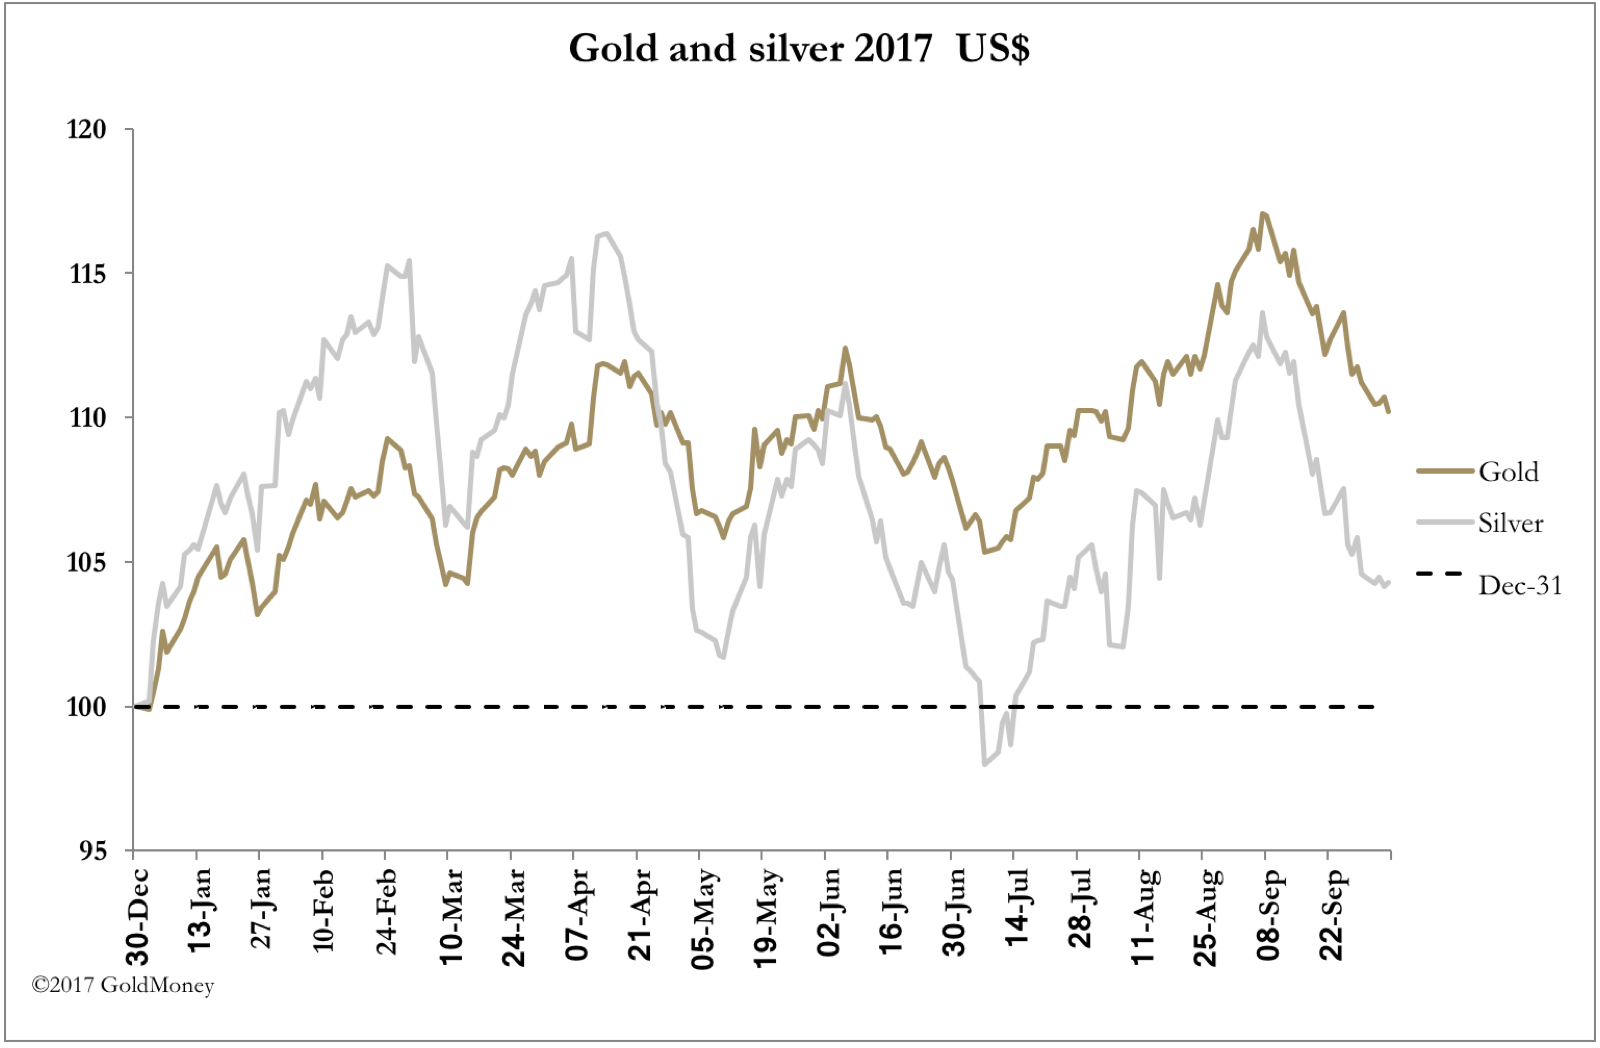 Gold and silver prices in USD